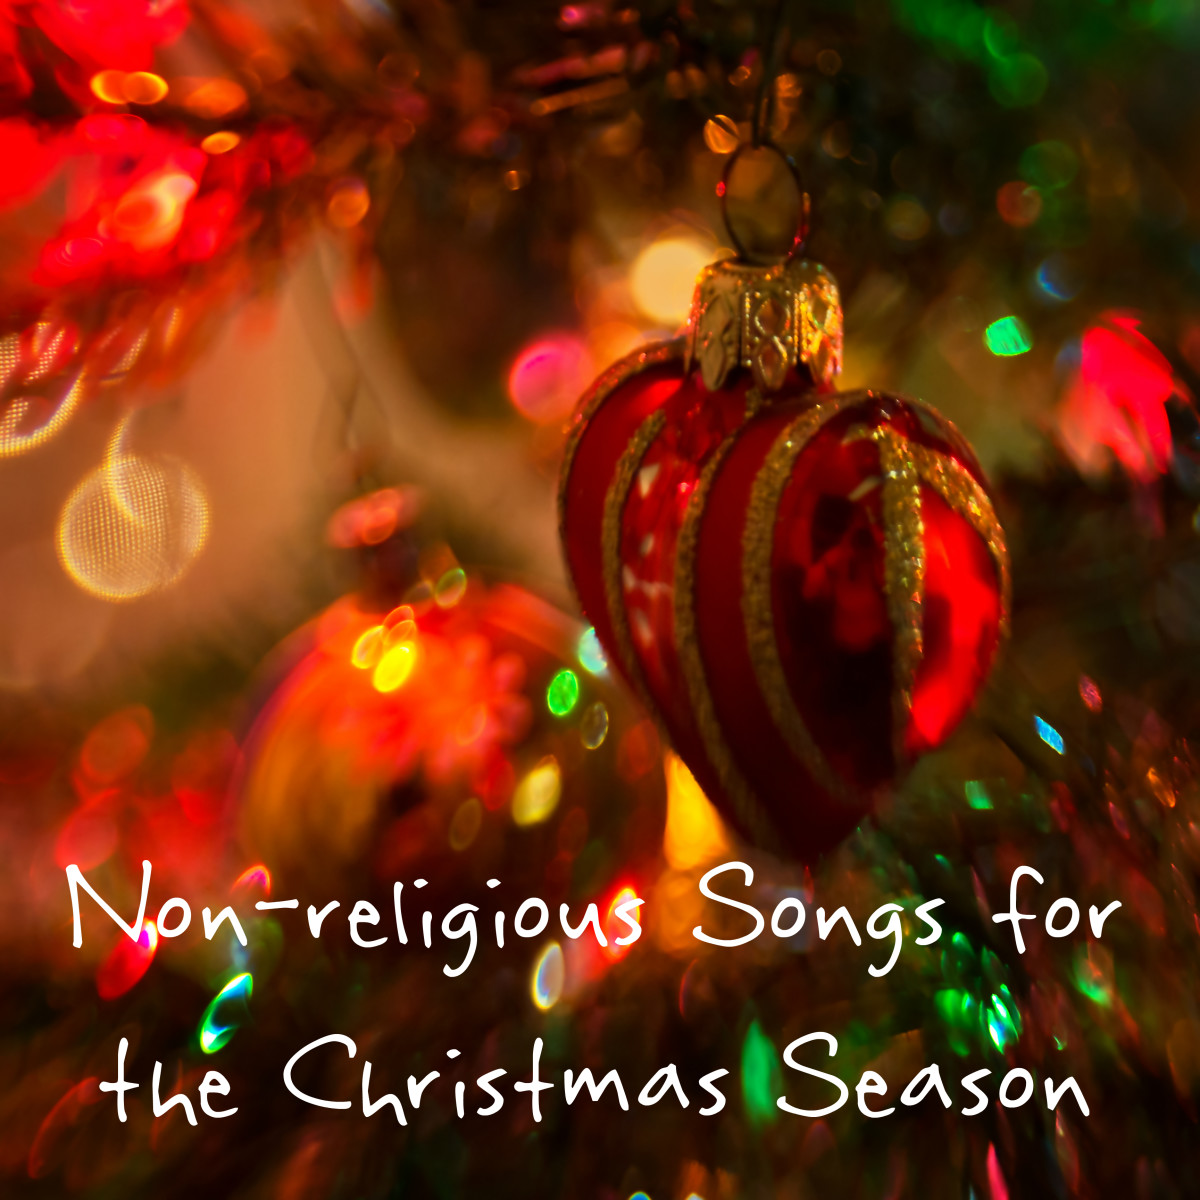 101 Non-Religious Christmas Songs for Your Holiday Playlist